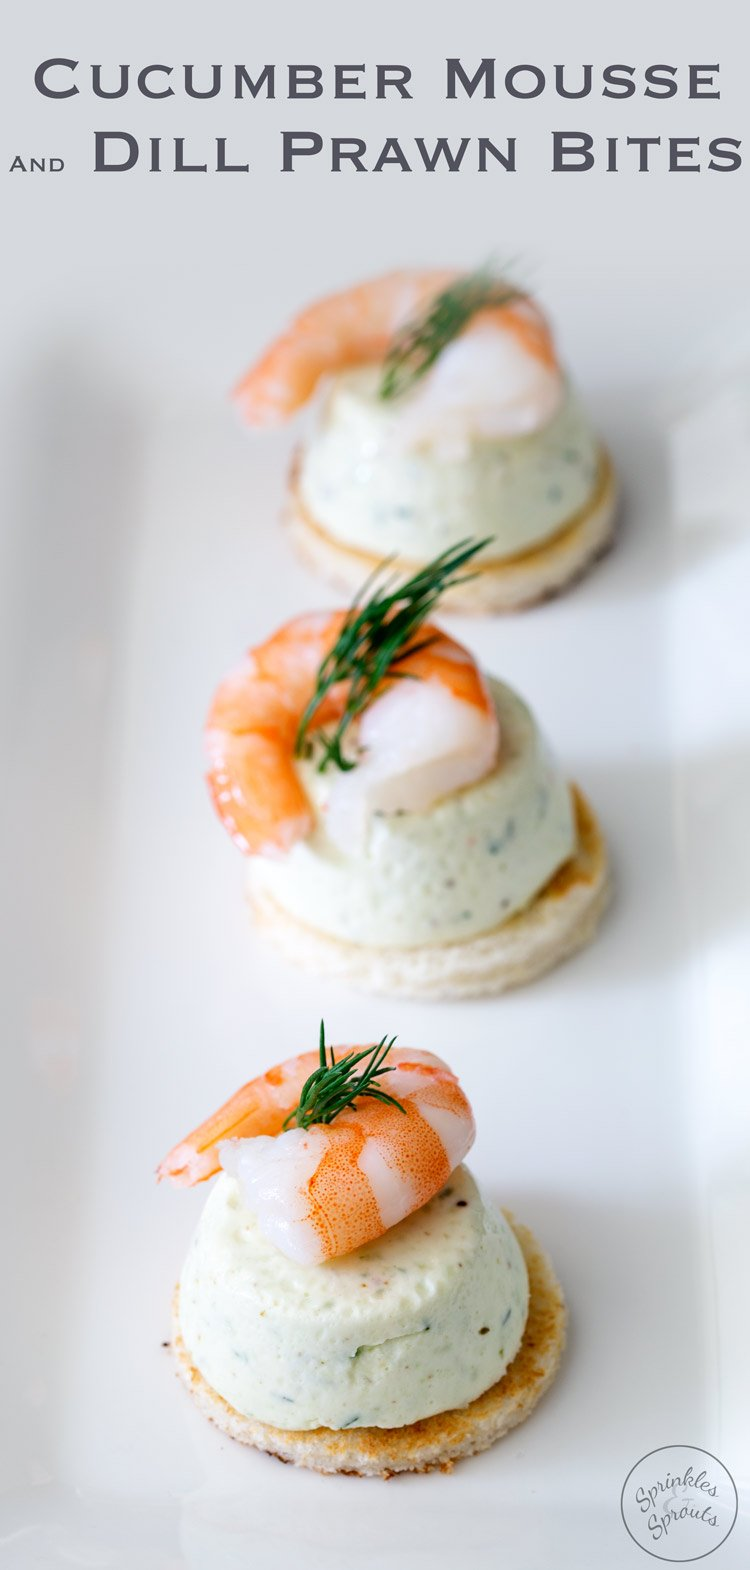 These Cucumber Mousse And Dill Prawn Bites are sublime. The subtle and refreshing taste of cucumber combined in a soft heavenly mousse, sat on top of a crispy toast circle and topped with a succulent prawn and the freshness of dill. From https://www.sprinklesandsprouts.com.au